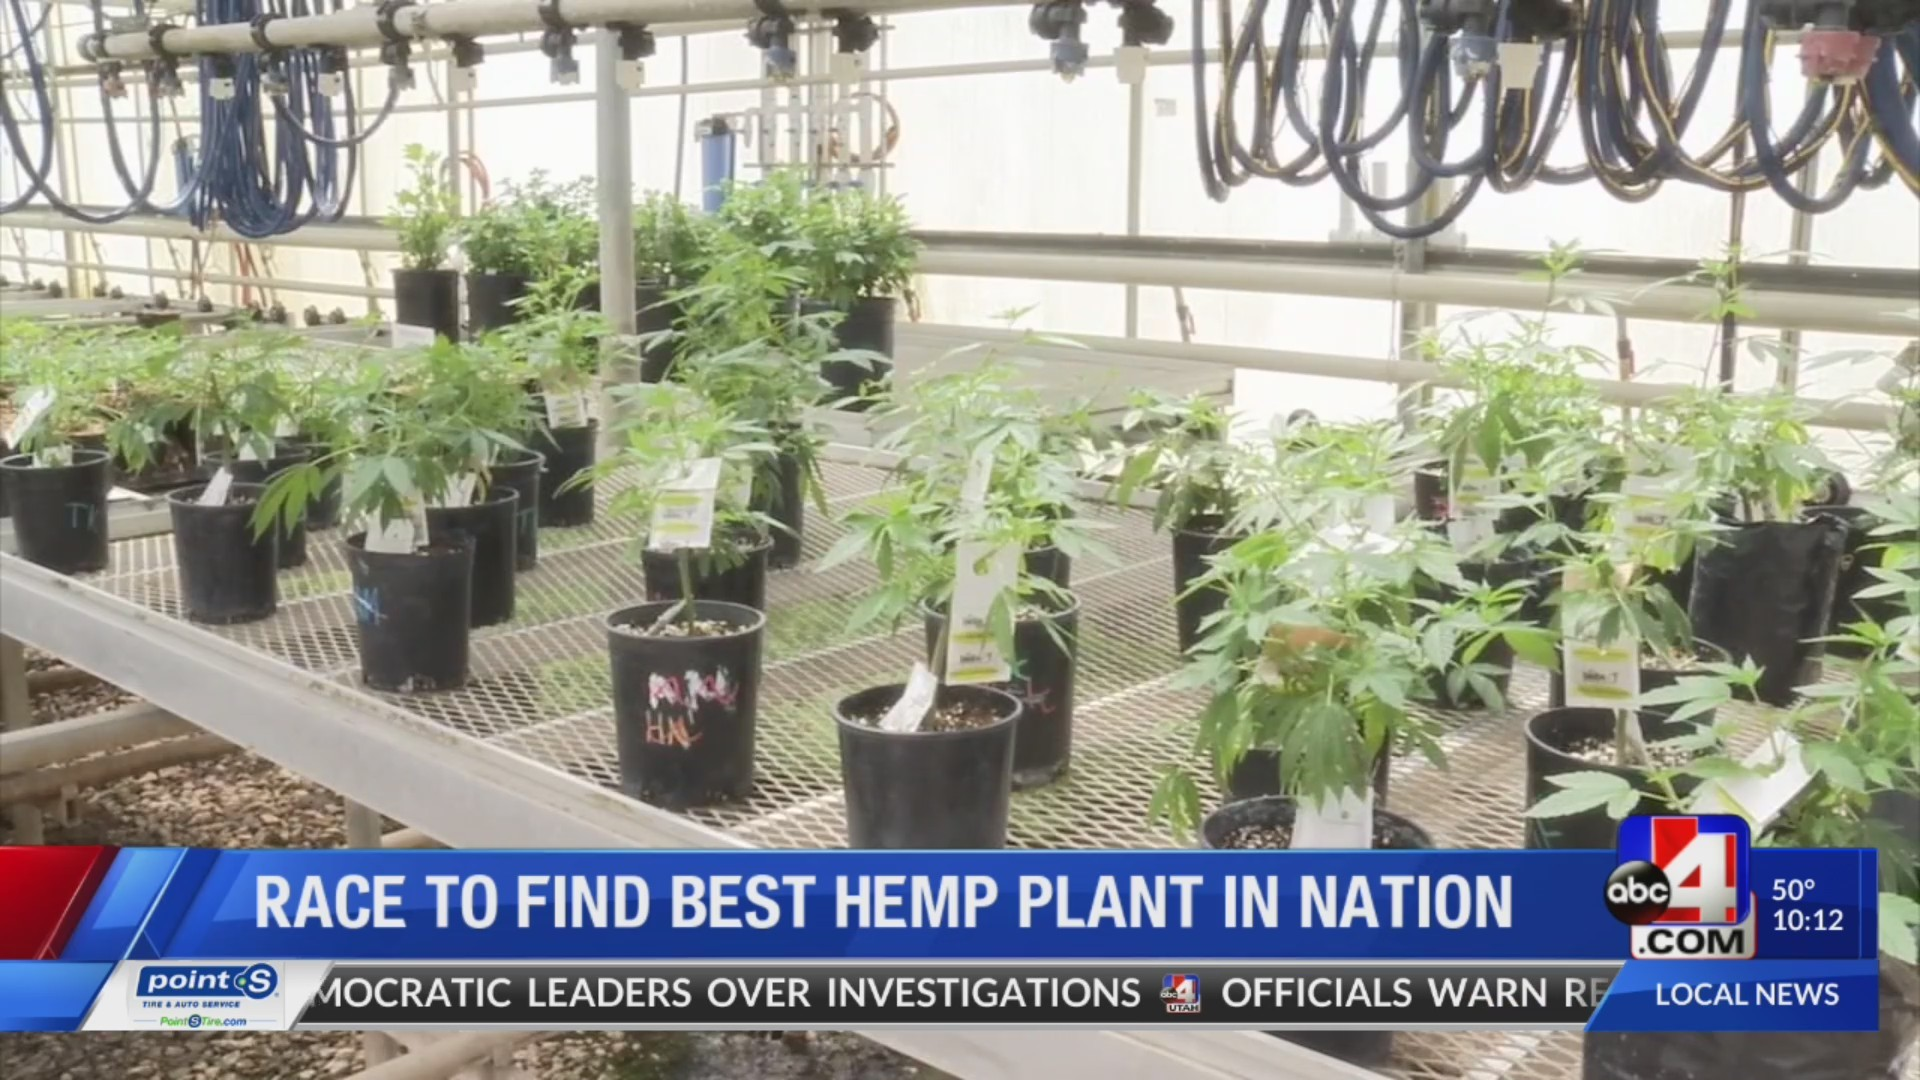 Dr Hemp research: Race to find the best hemp plant in the nation